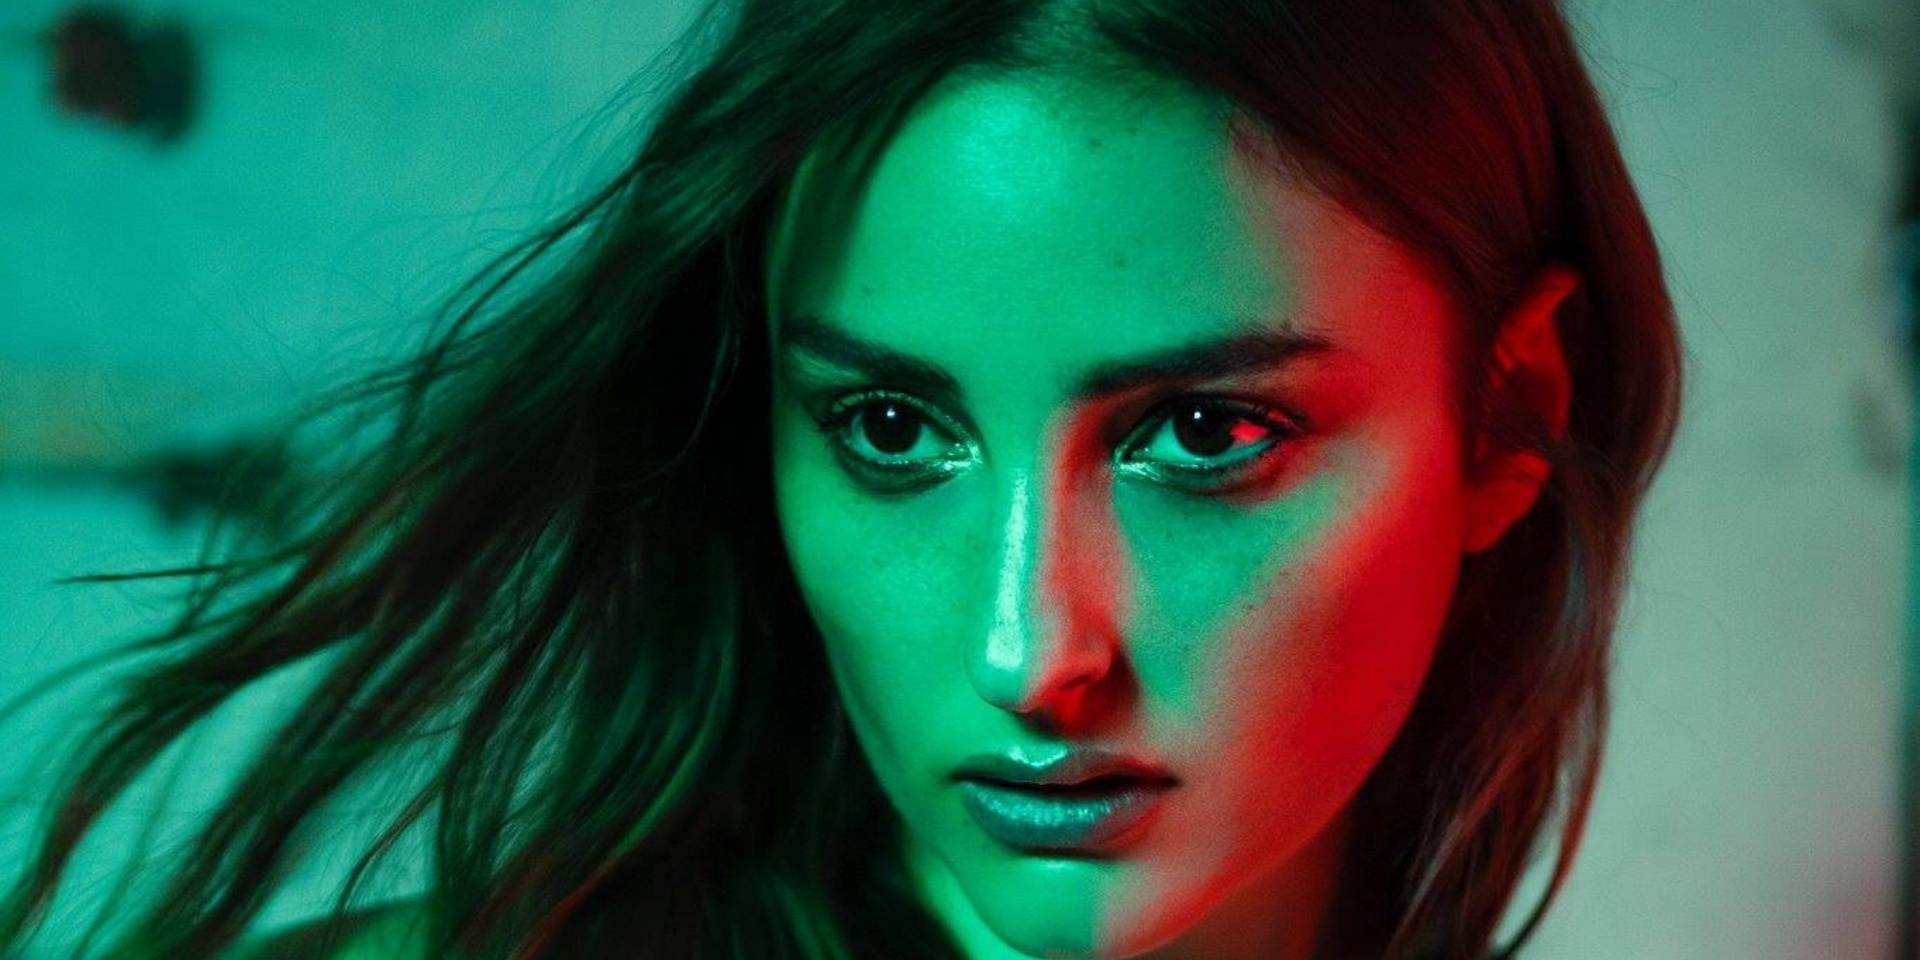 Banks releases haunting new single 'Gimme' – listen